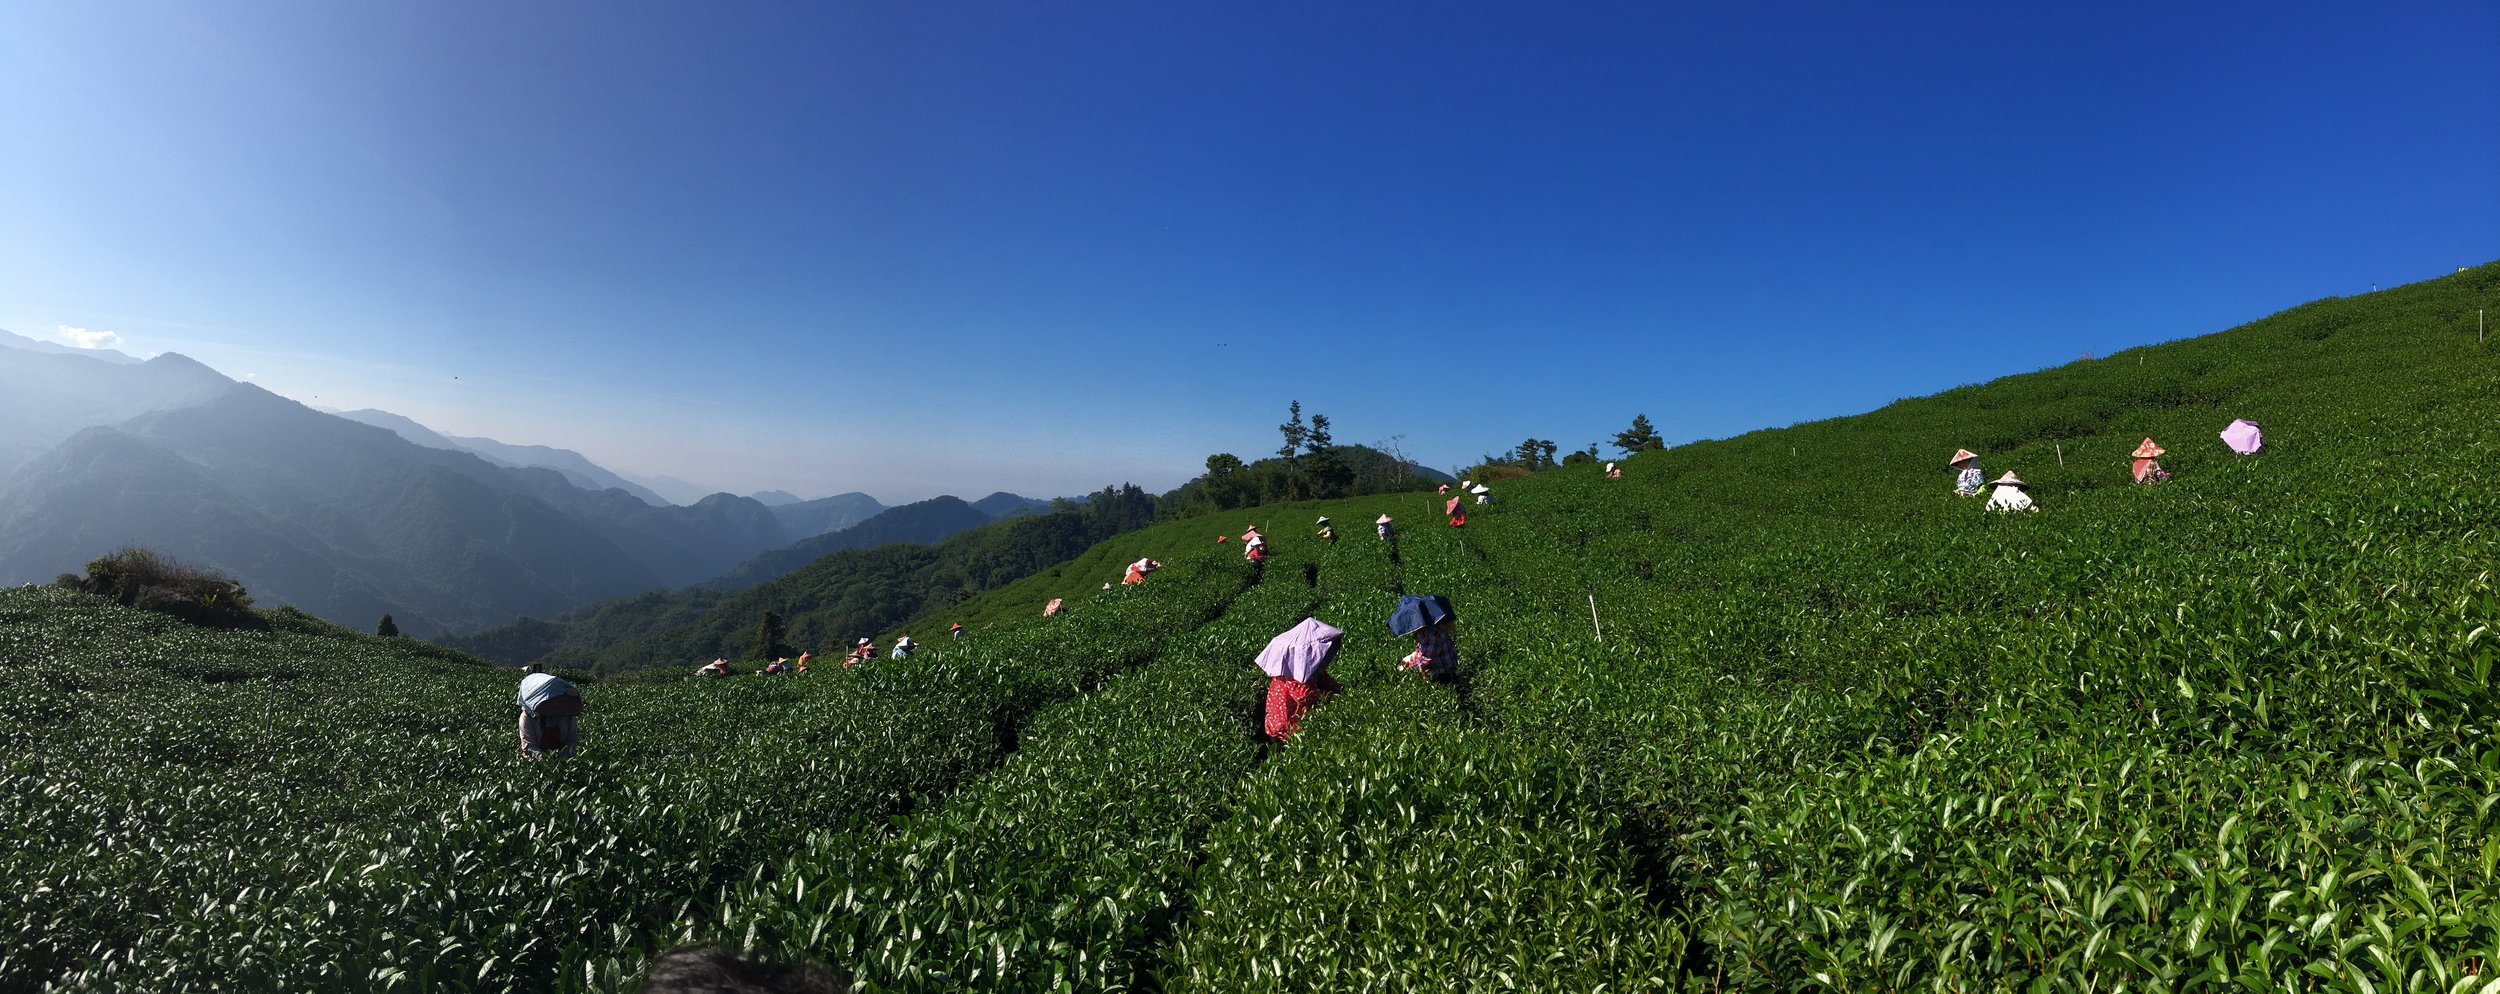 tea farming on the mountain